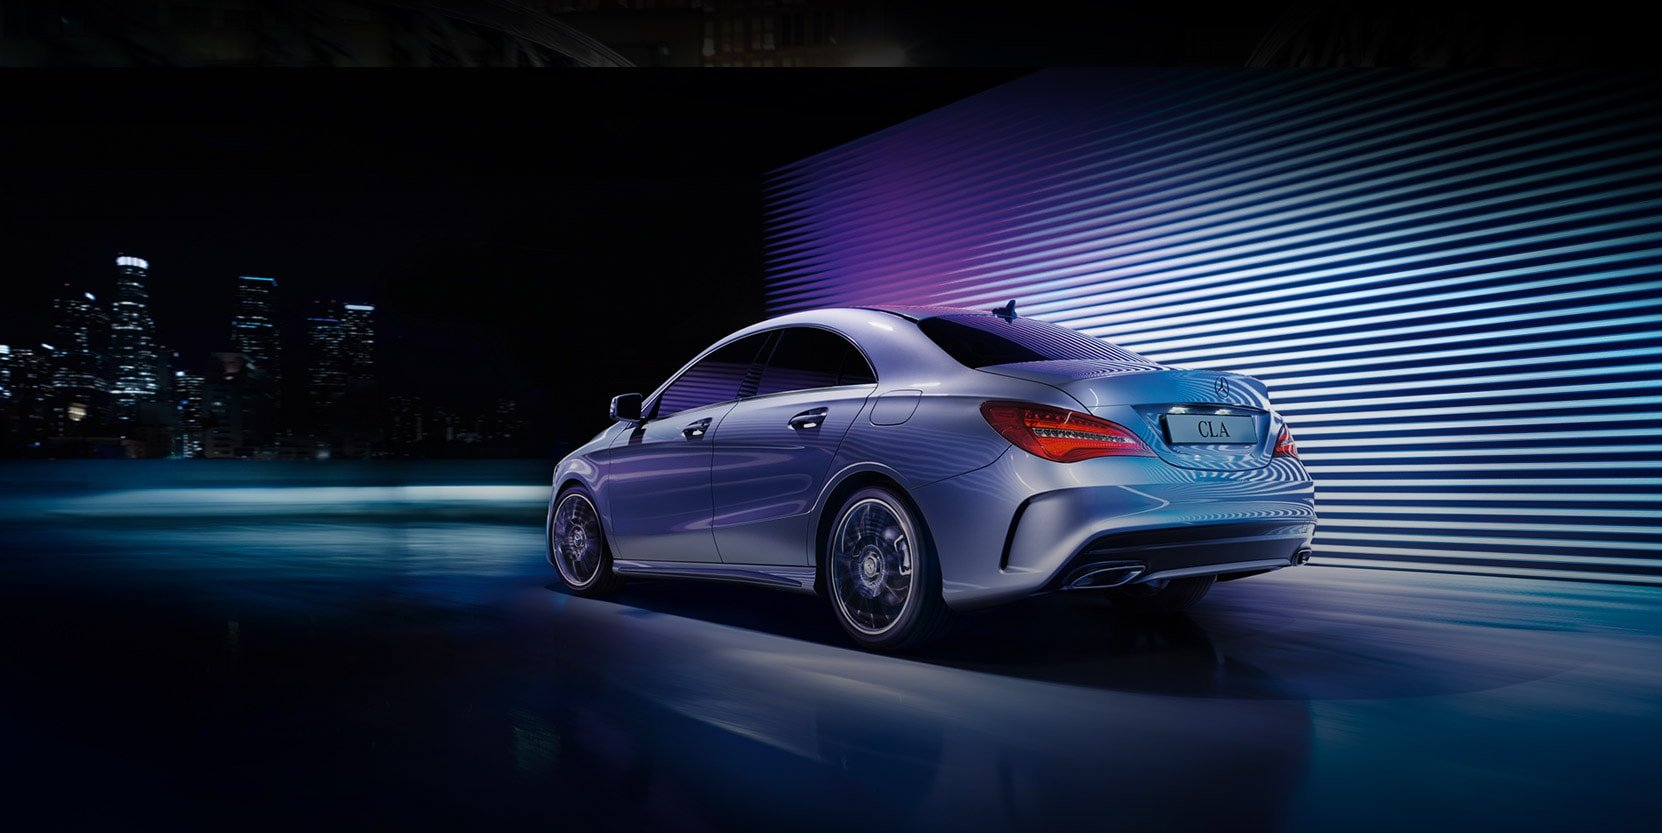 Mercedes Benz new CLA Car Export Company